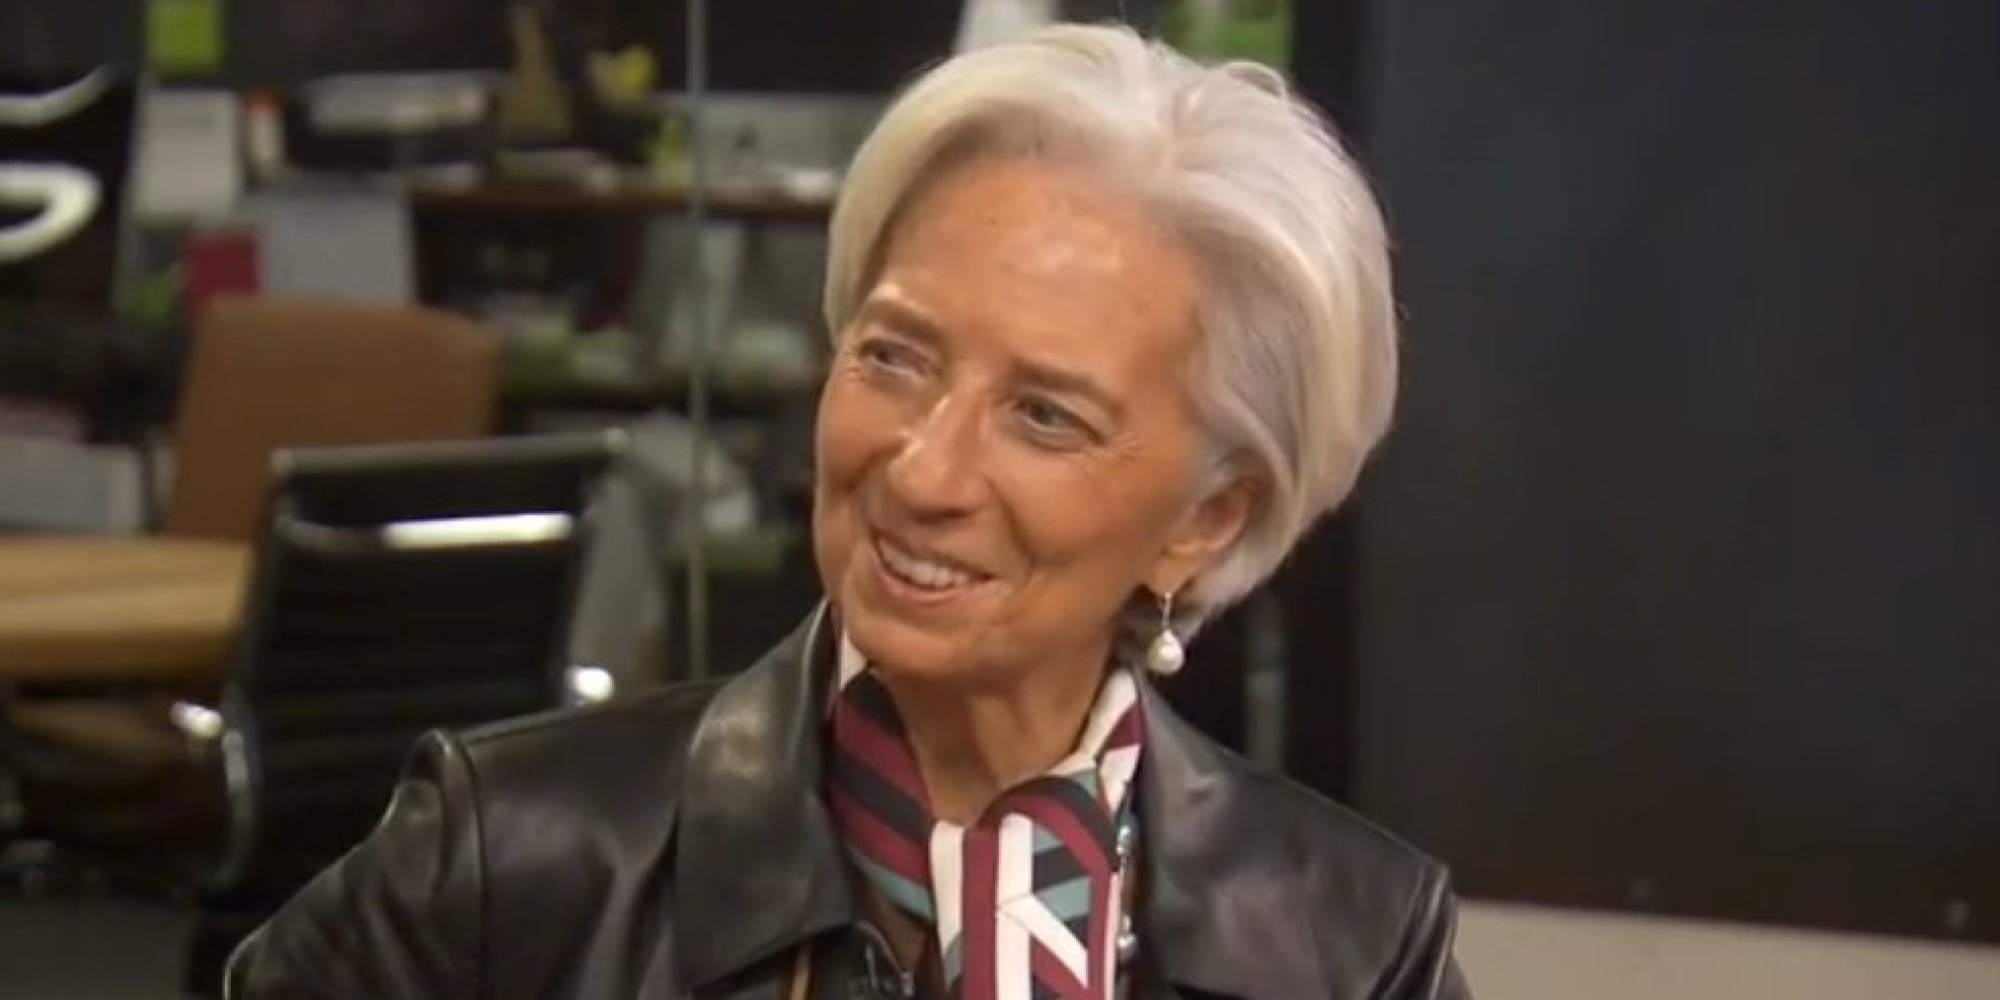 IMF Chief Christine Lagarde Expresses Optimism For Greece | HuffPost